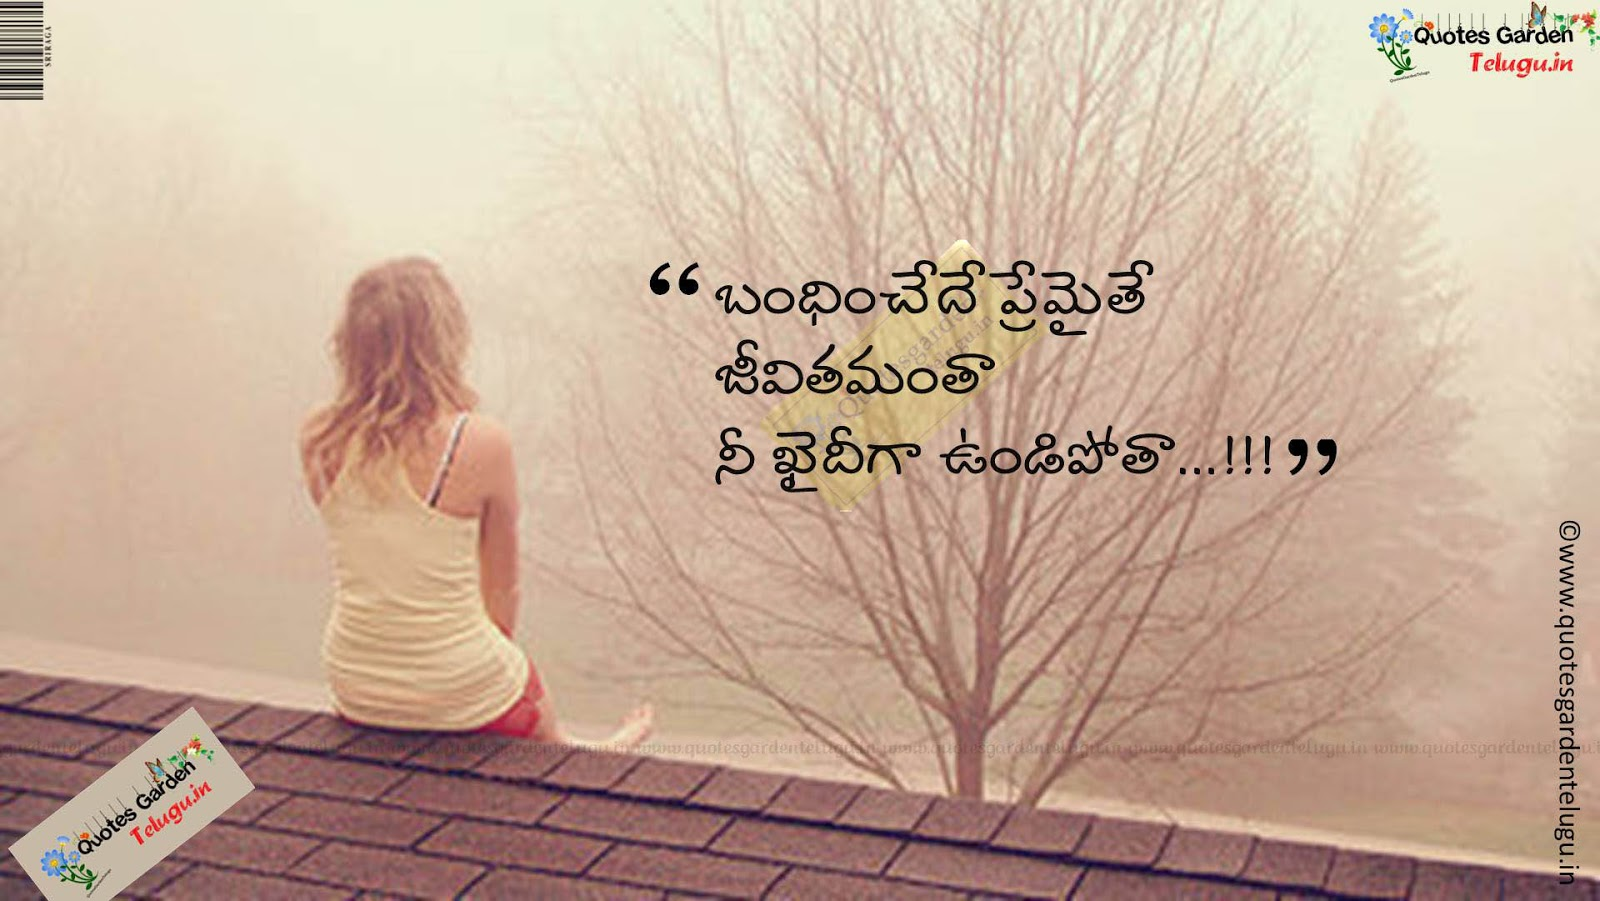 best telugu heart touching love quotes 835 quotes garden